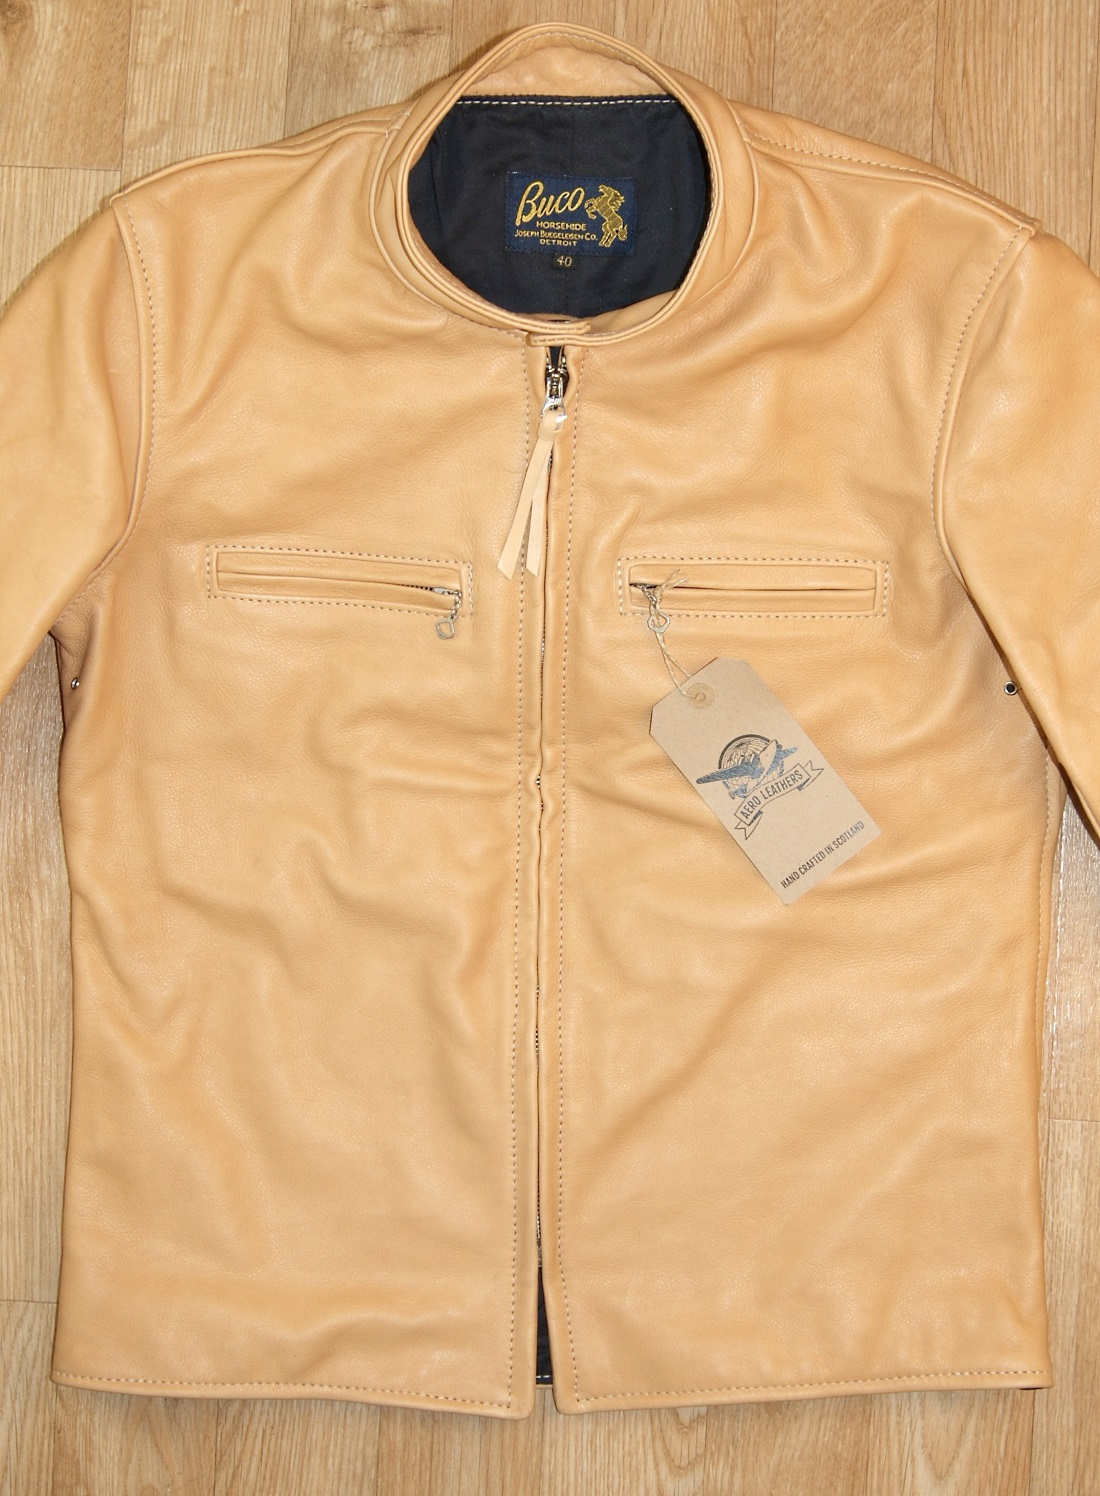 Aero Board Racer Natural Vicenza Horsehide PDE front.jpg